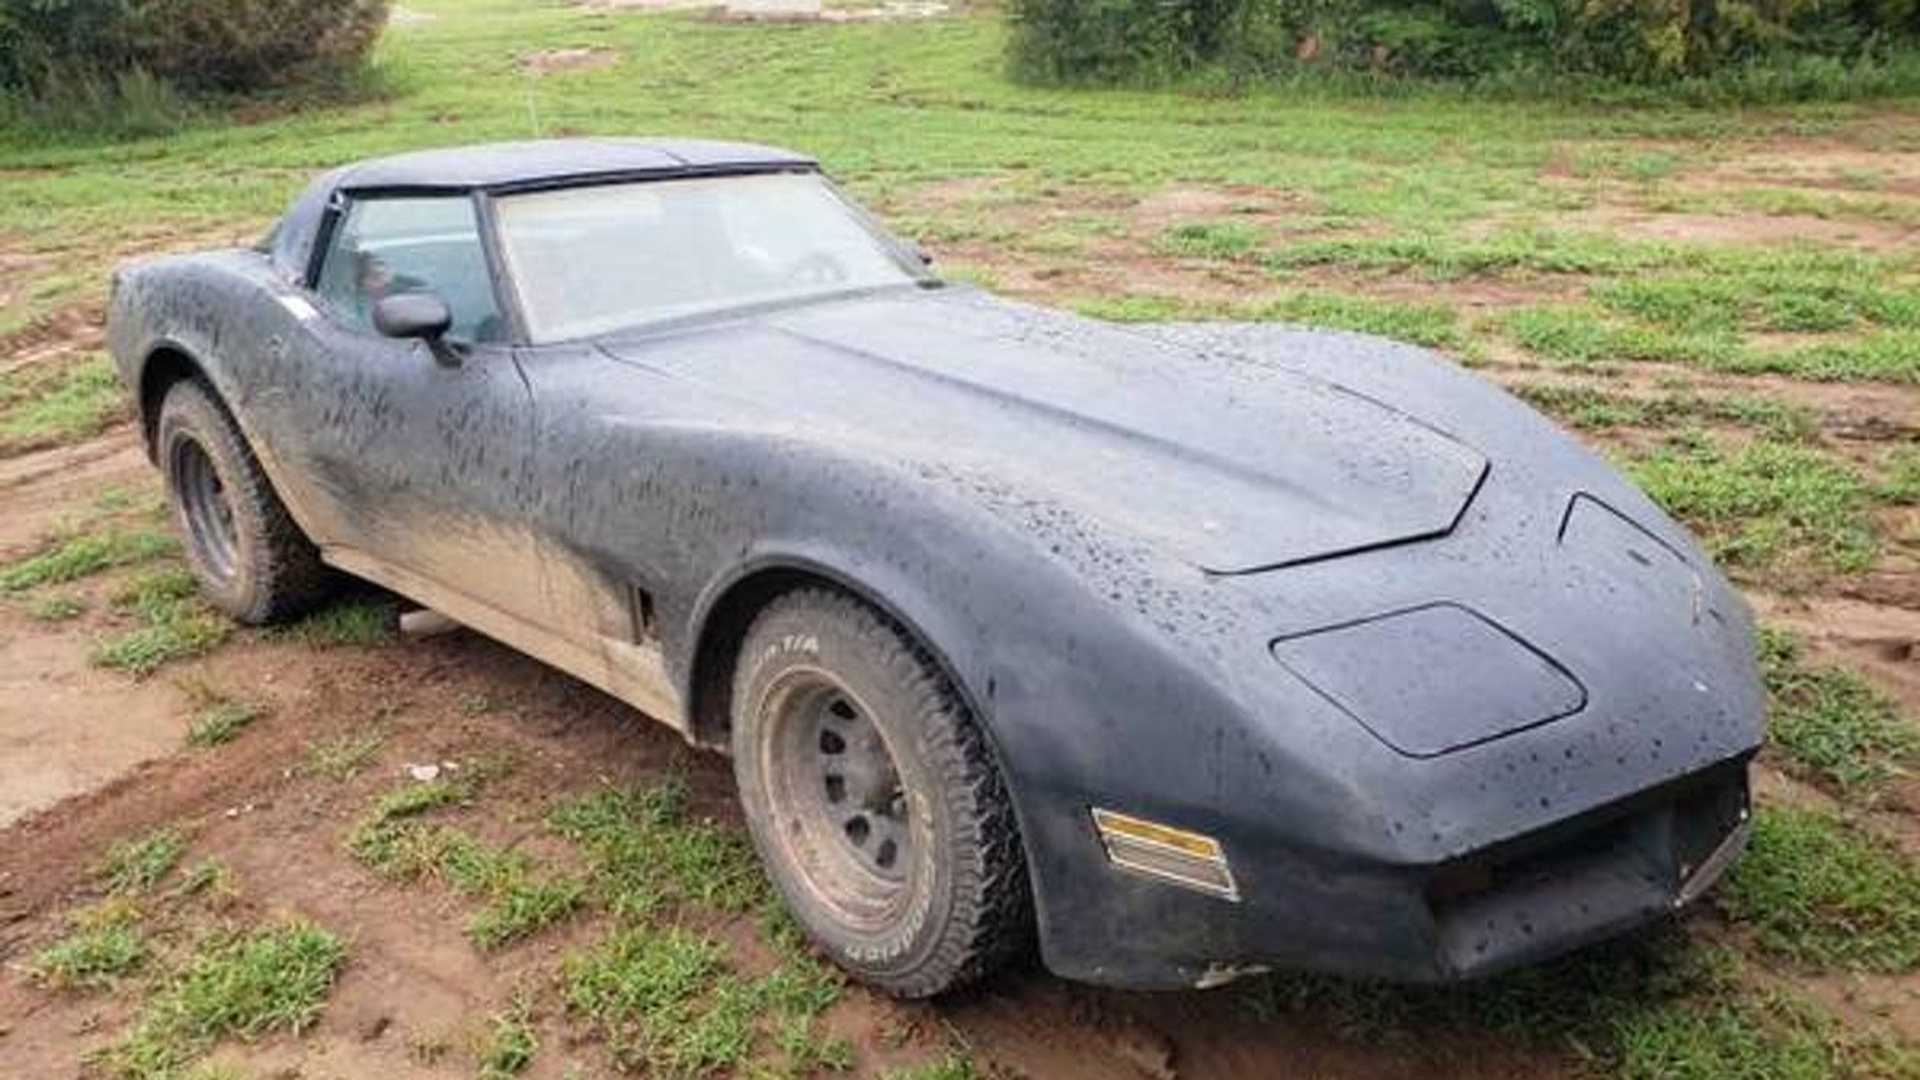 Own This Off-Road 1980 Chevy Corvette With A 6 2L Diesel